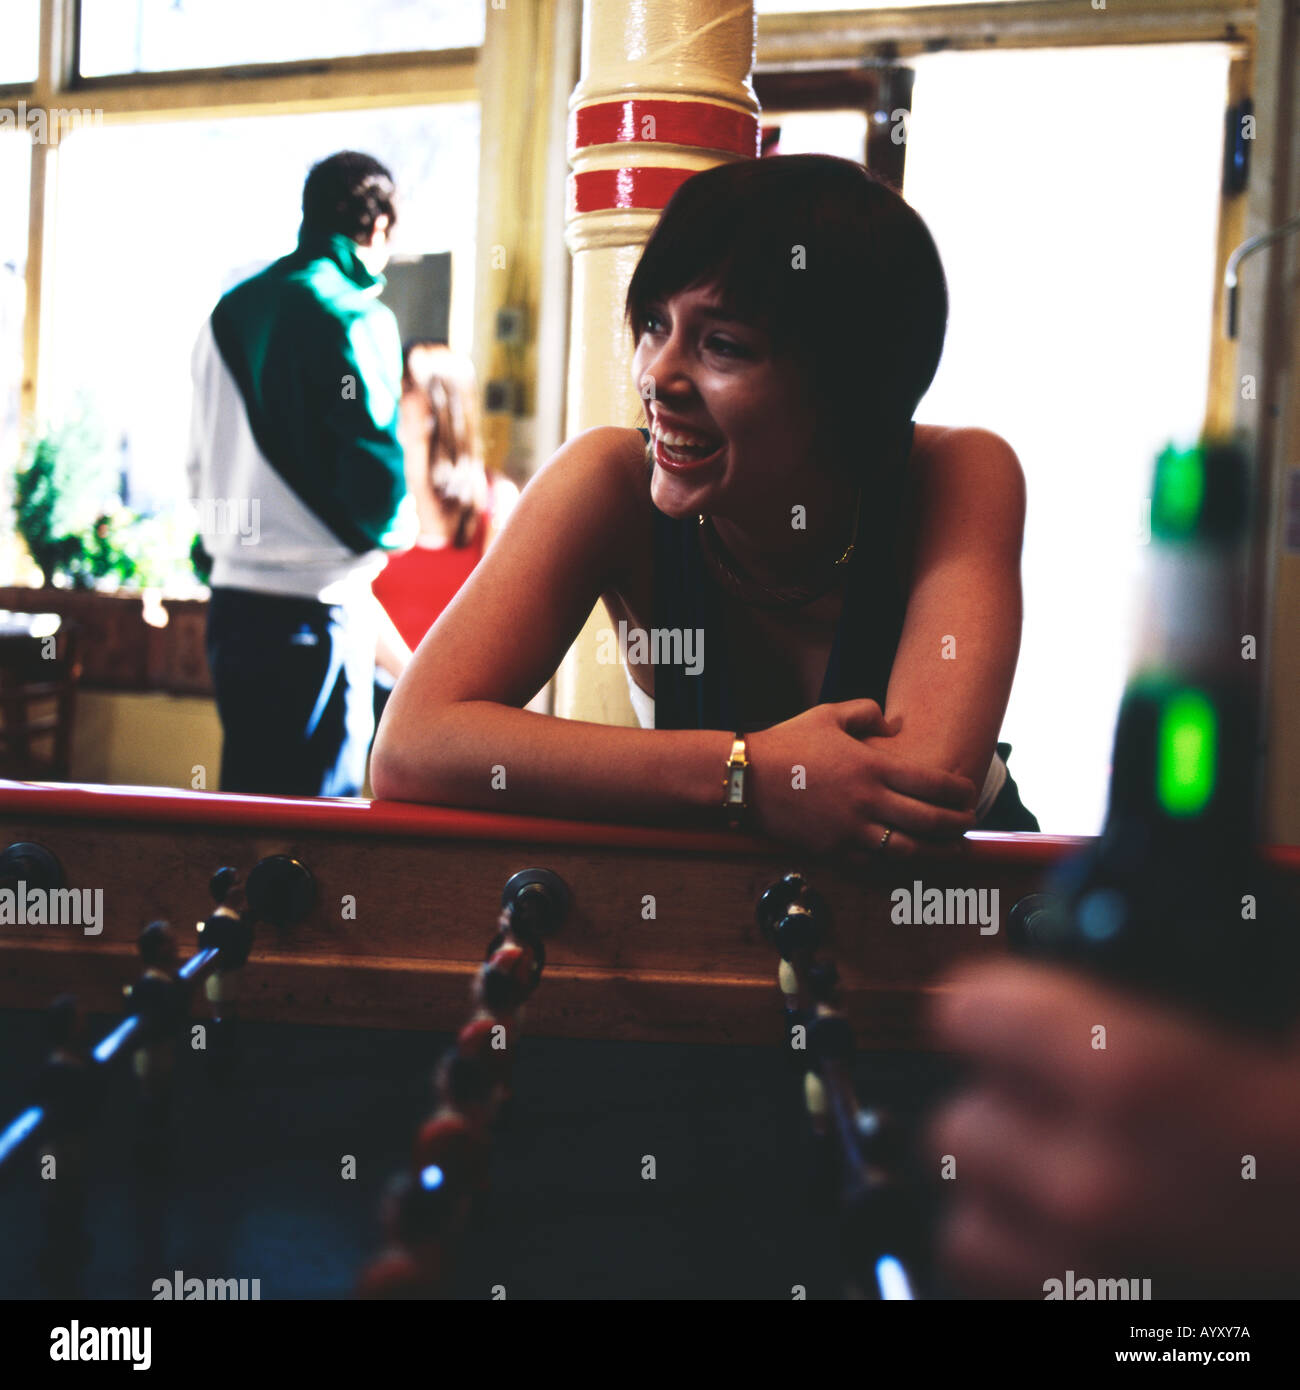 Girl playing table football in bar - Stock Image